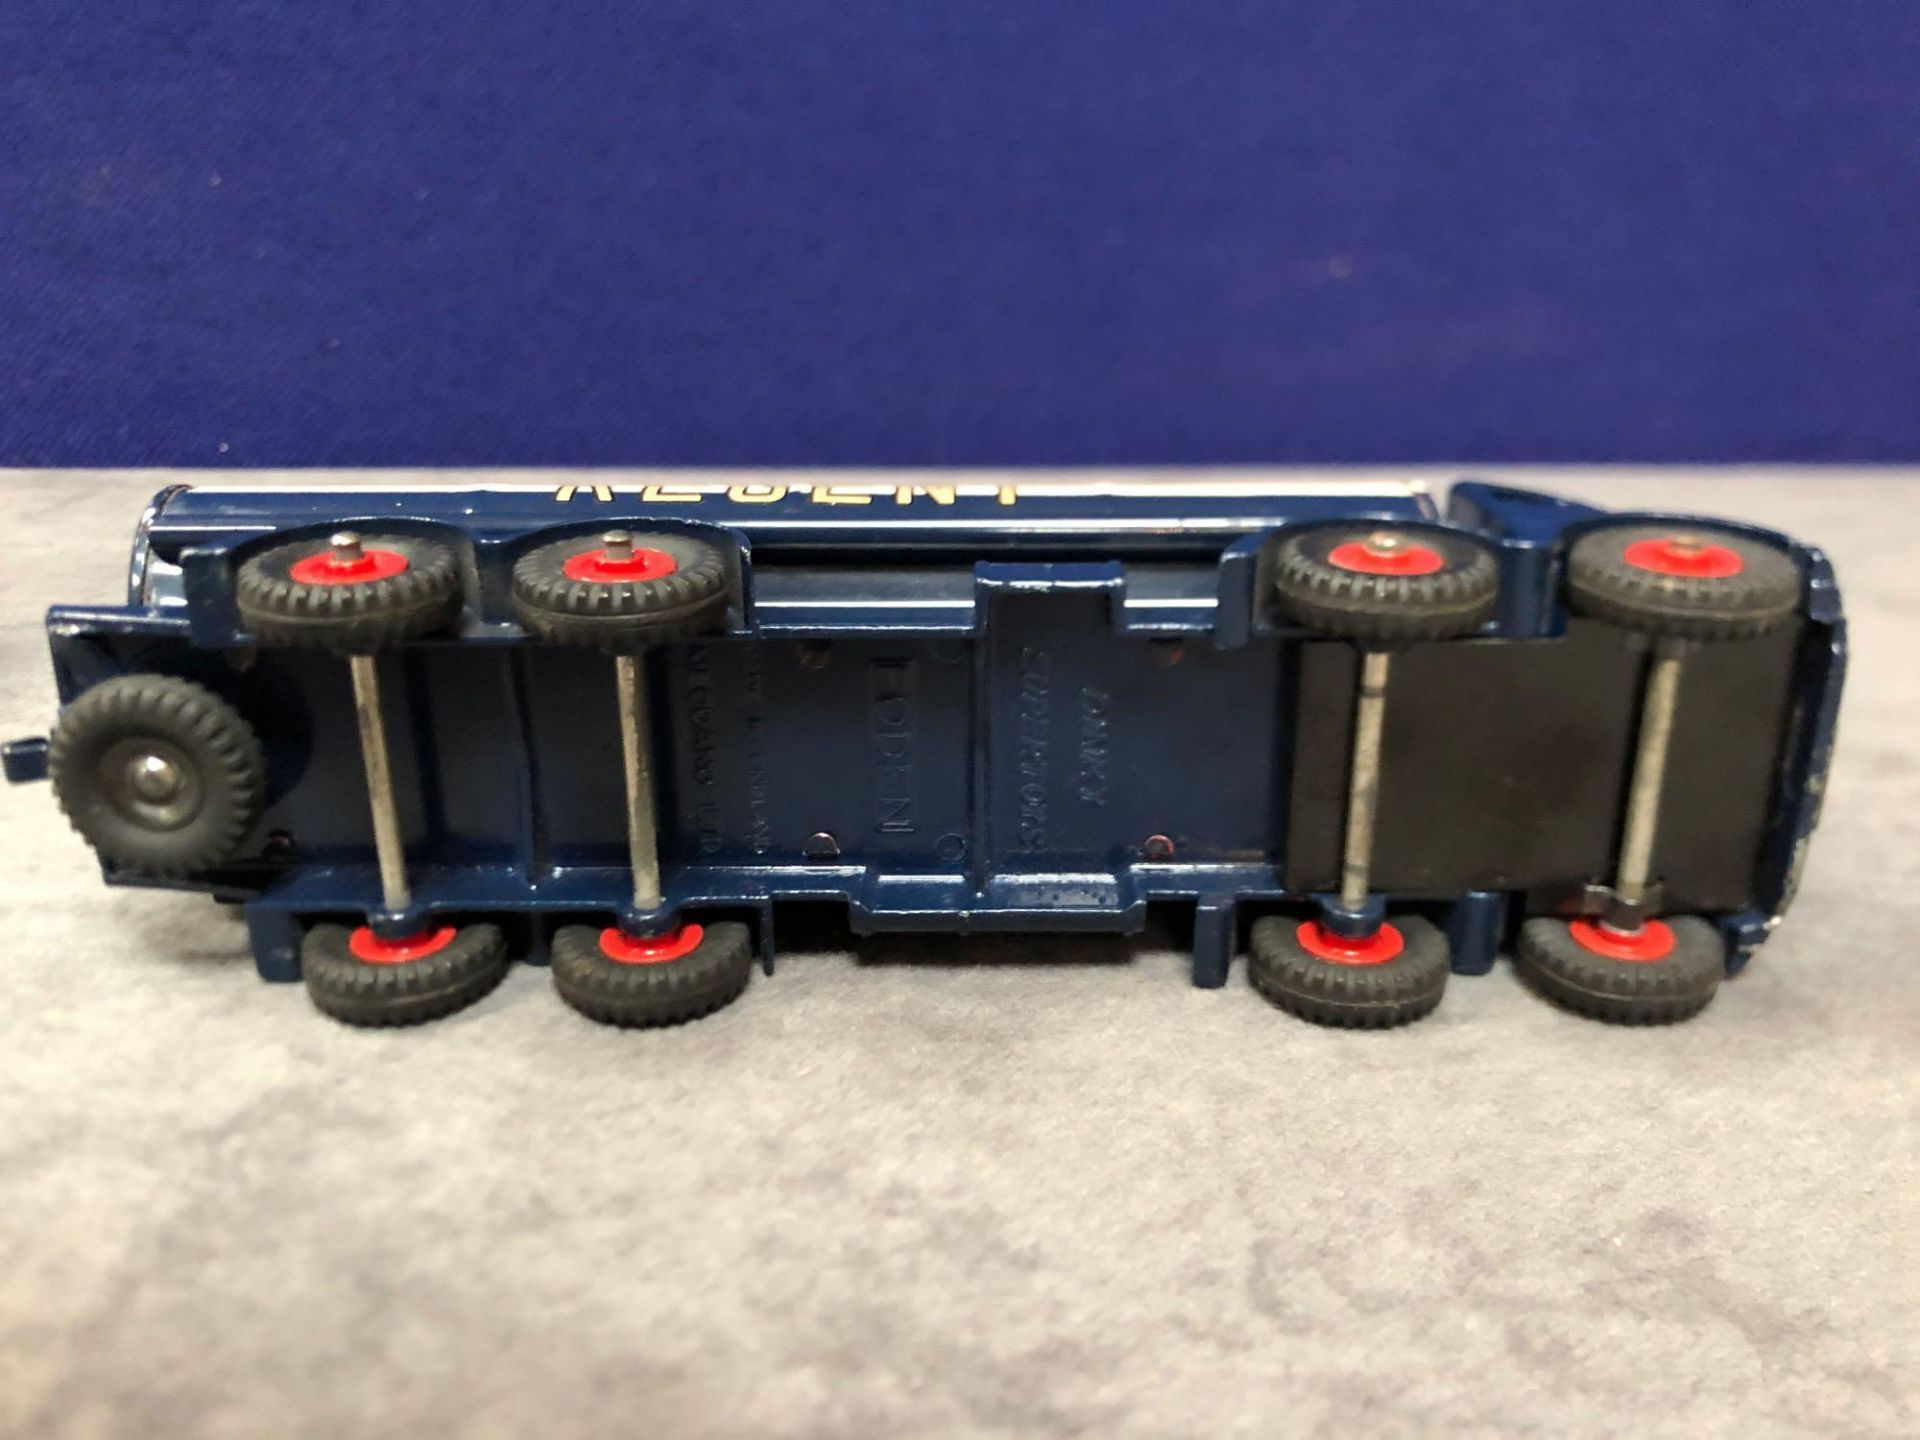 Dinky Supertoys Diecast #942 Foden 14-Ton Tanker Regent in excellent condition with bright paint - Image 4 of 4